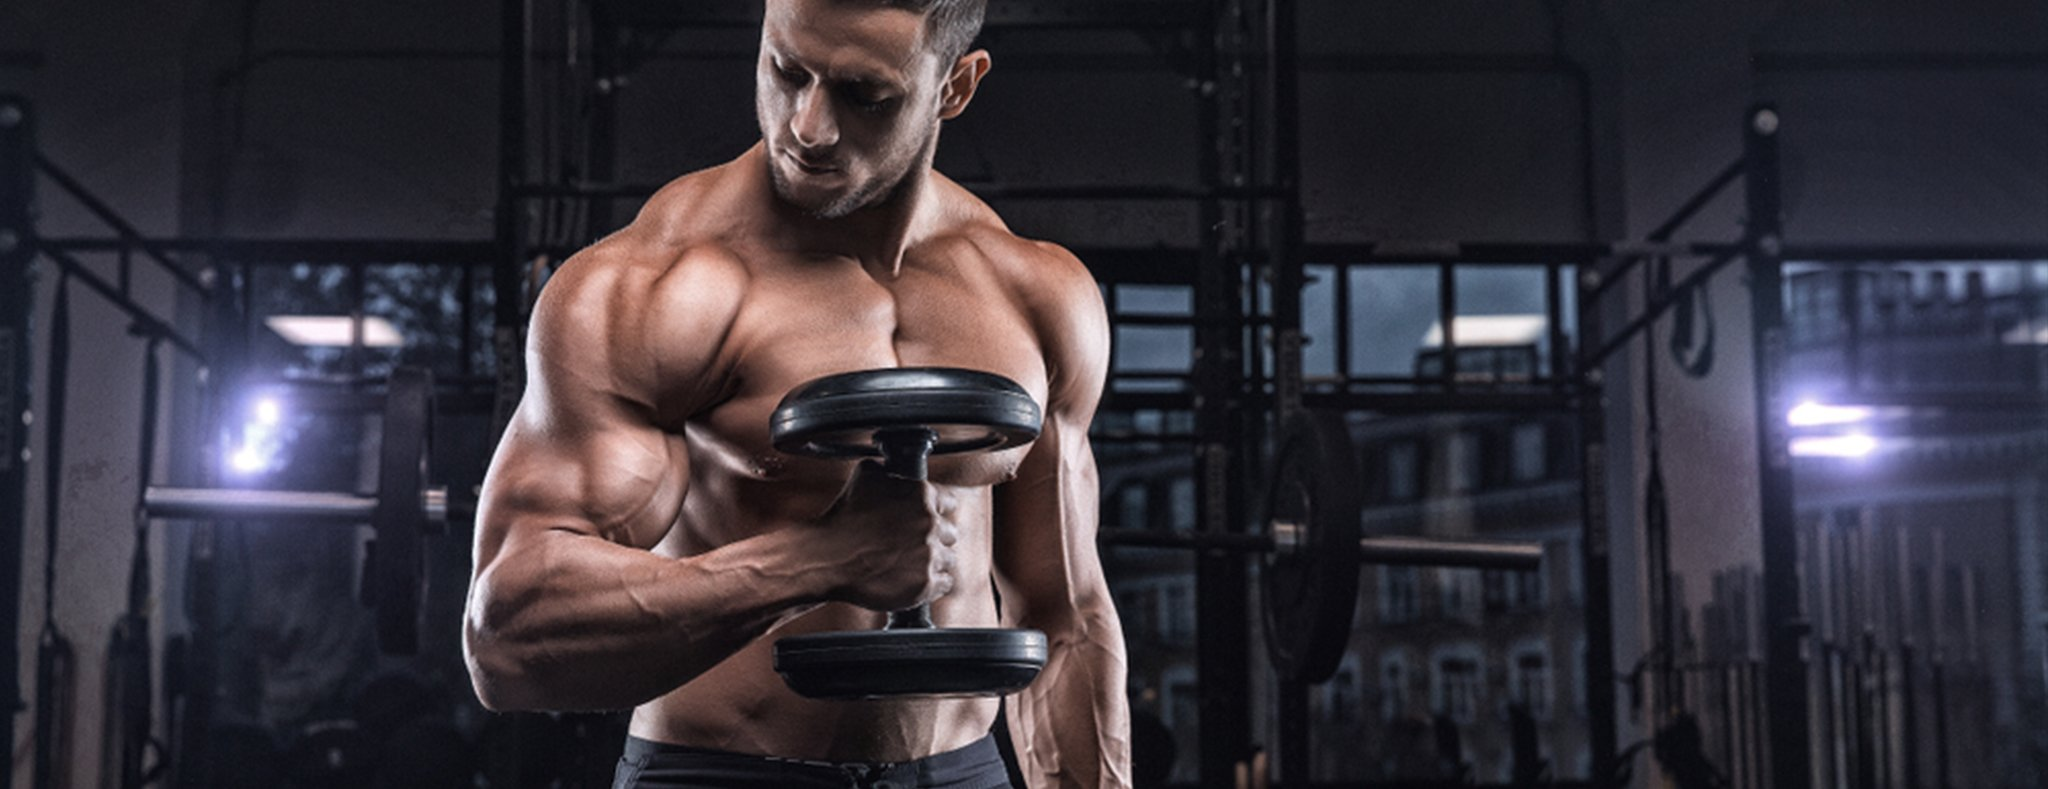 THE BEST BICEP EXERCISES